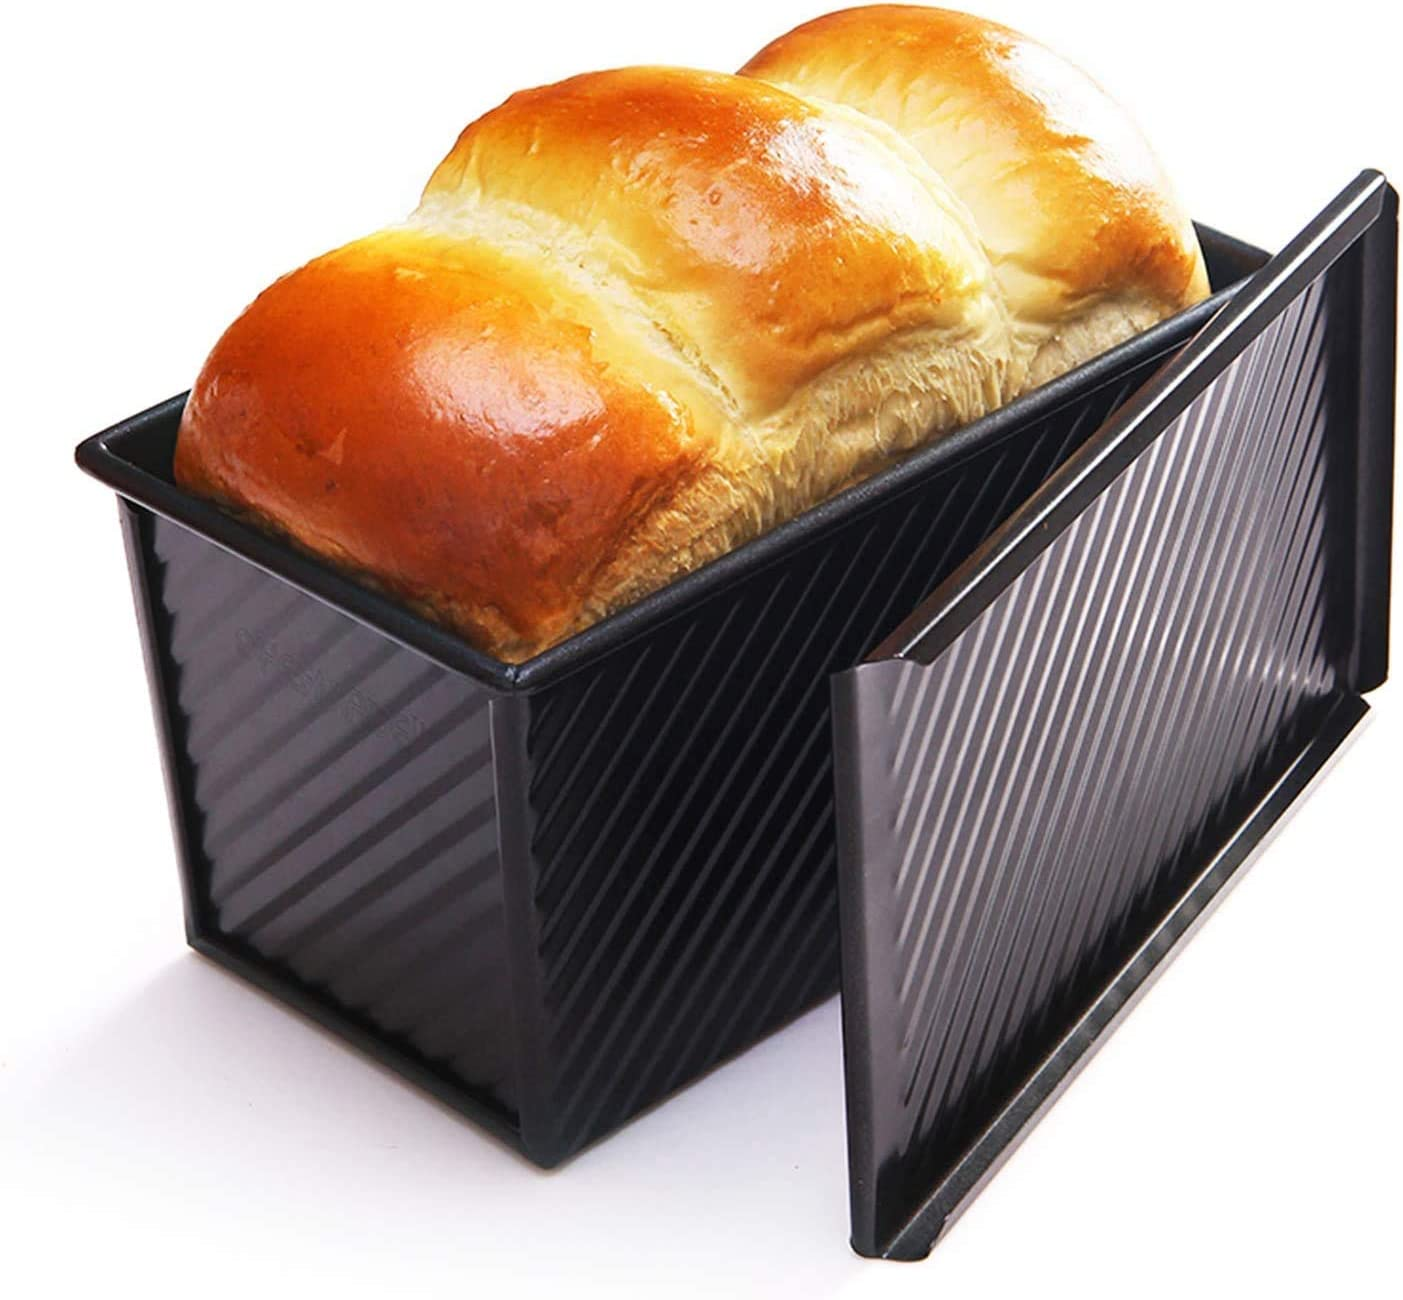 Pullman Bread loaf Pan with Lid Non-Stick Stee Super beauty product restock quality top! Bargain sale Carbon Bakeware -